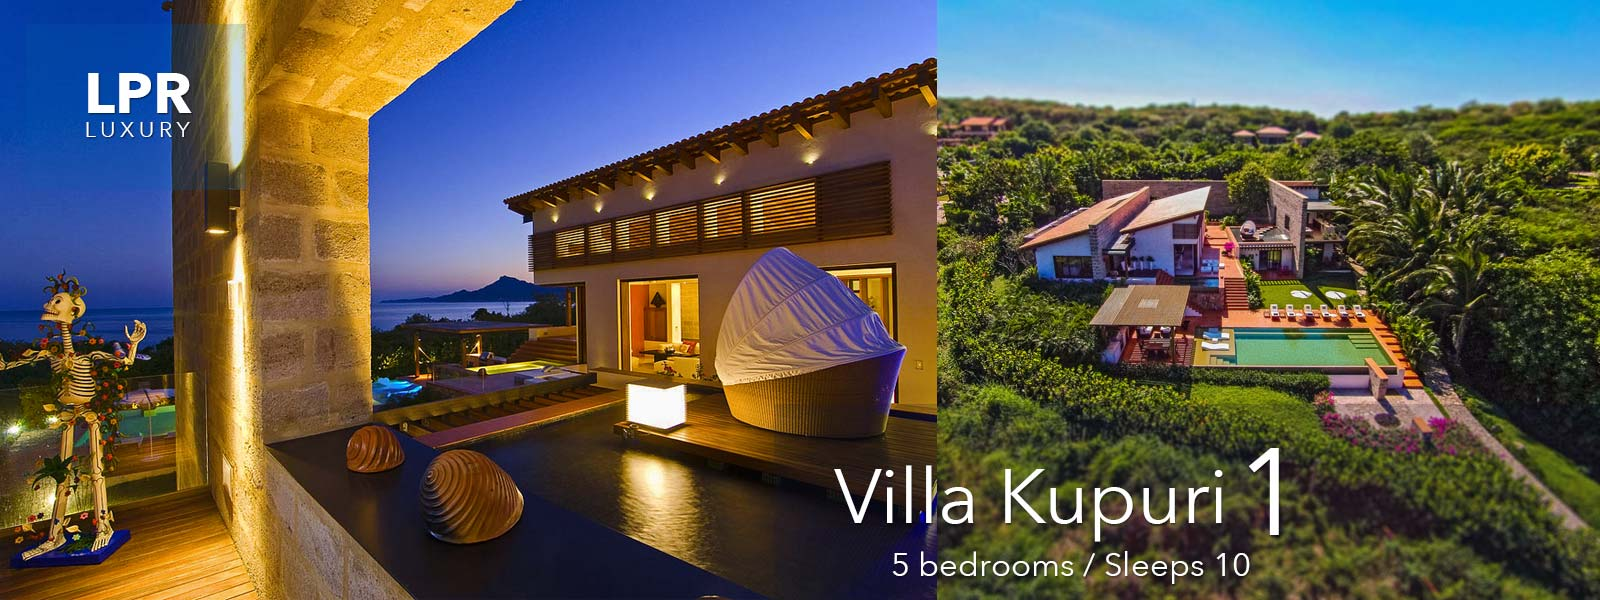 Villa Kupuri 1 - Luxury Punta Mita Resort Vacation Rentals Villas, Mexico